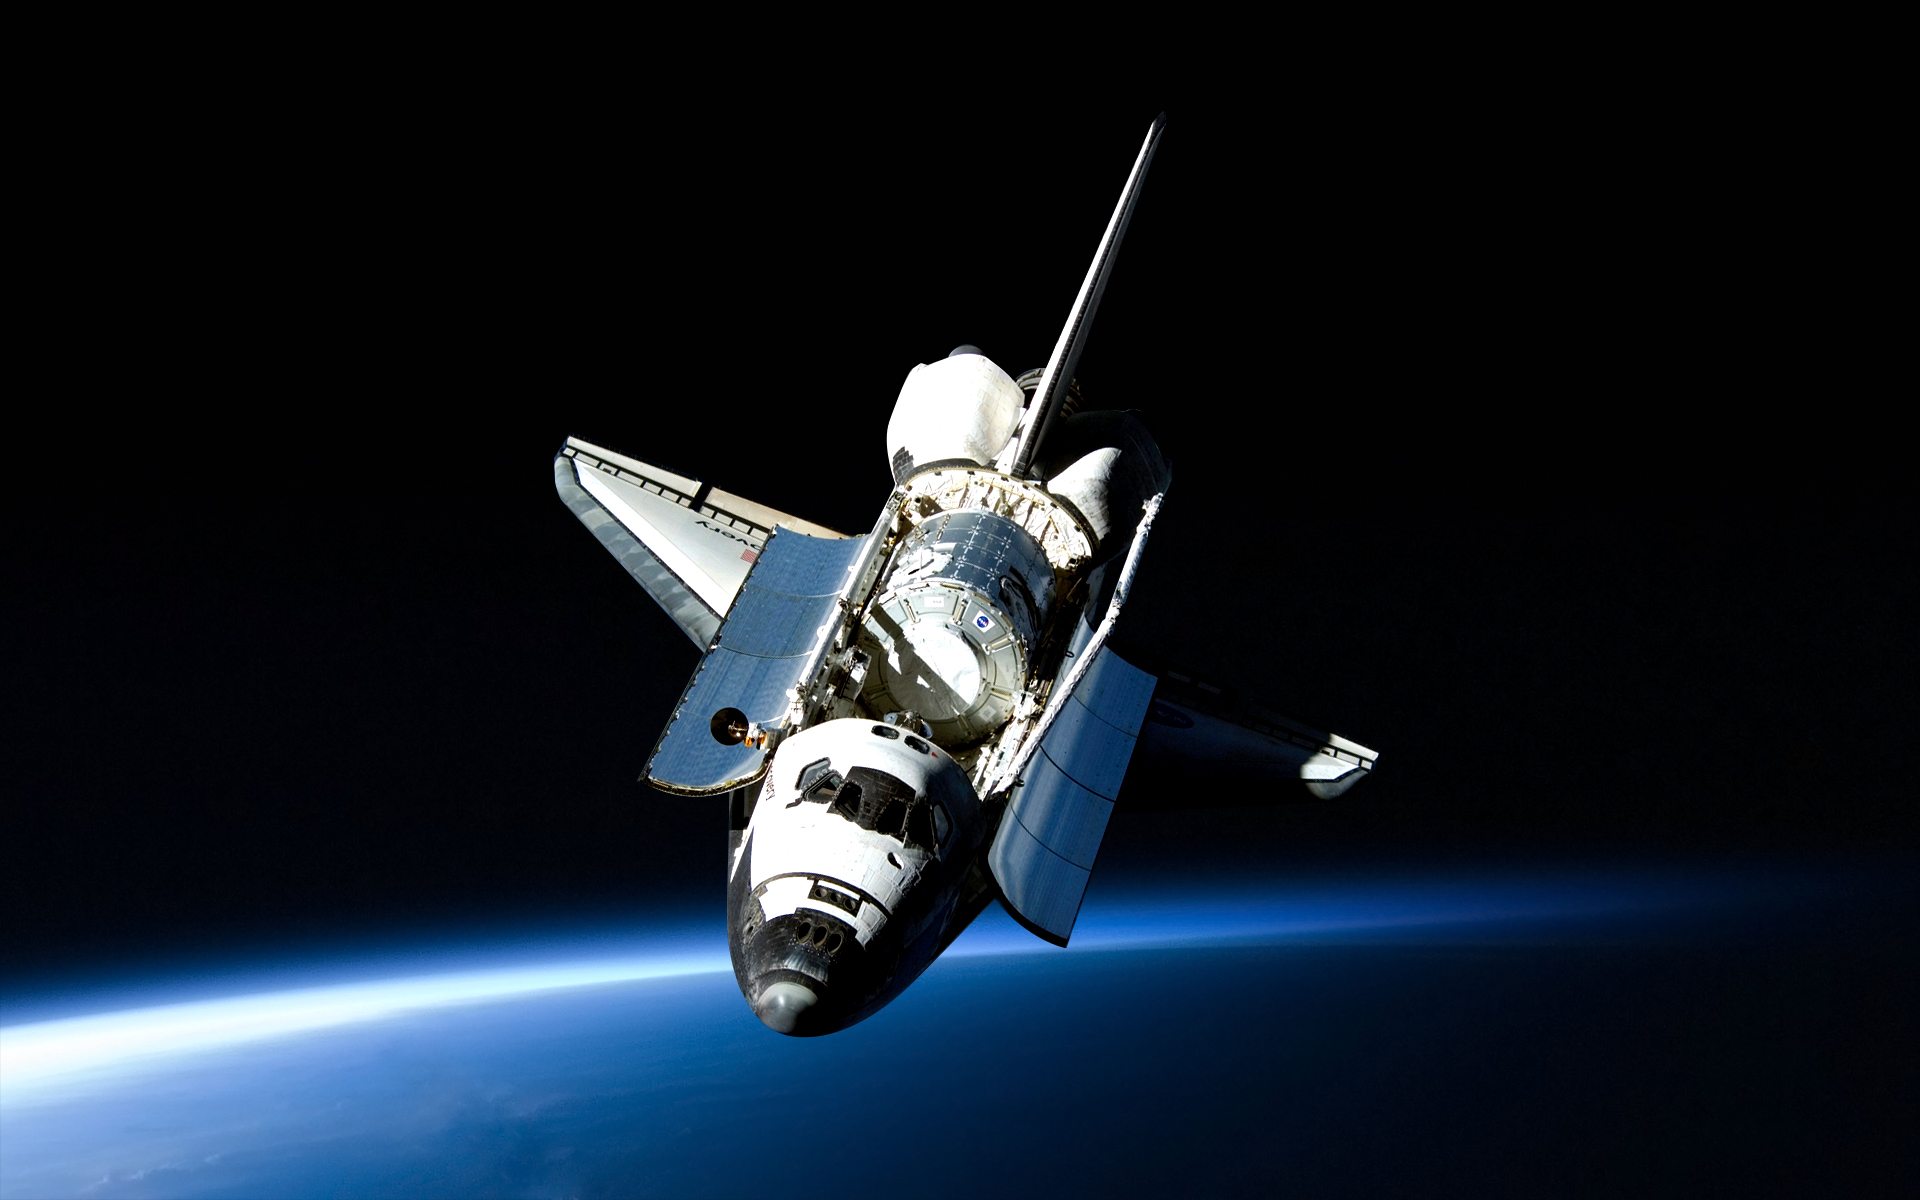 hd space shuttle in space -#main